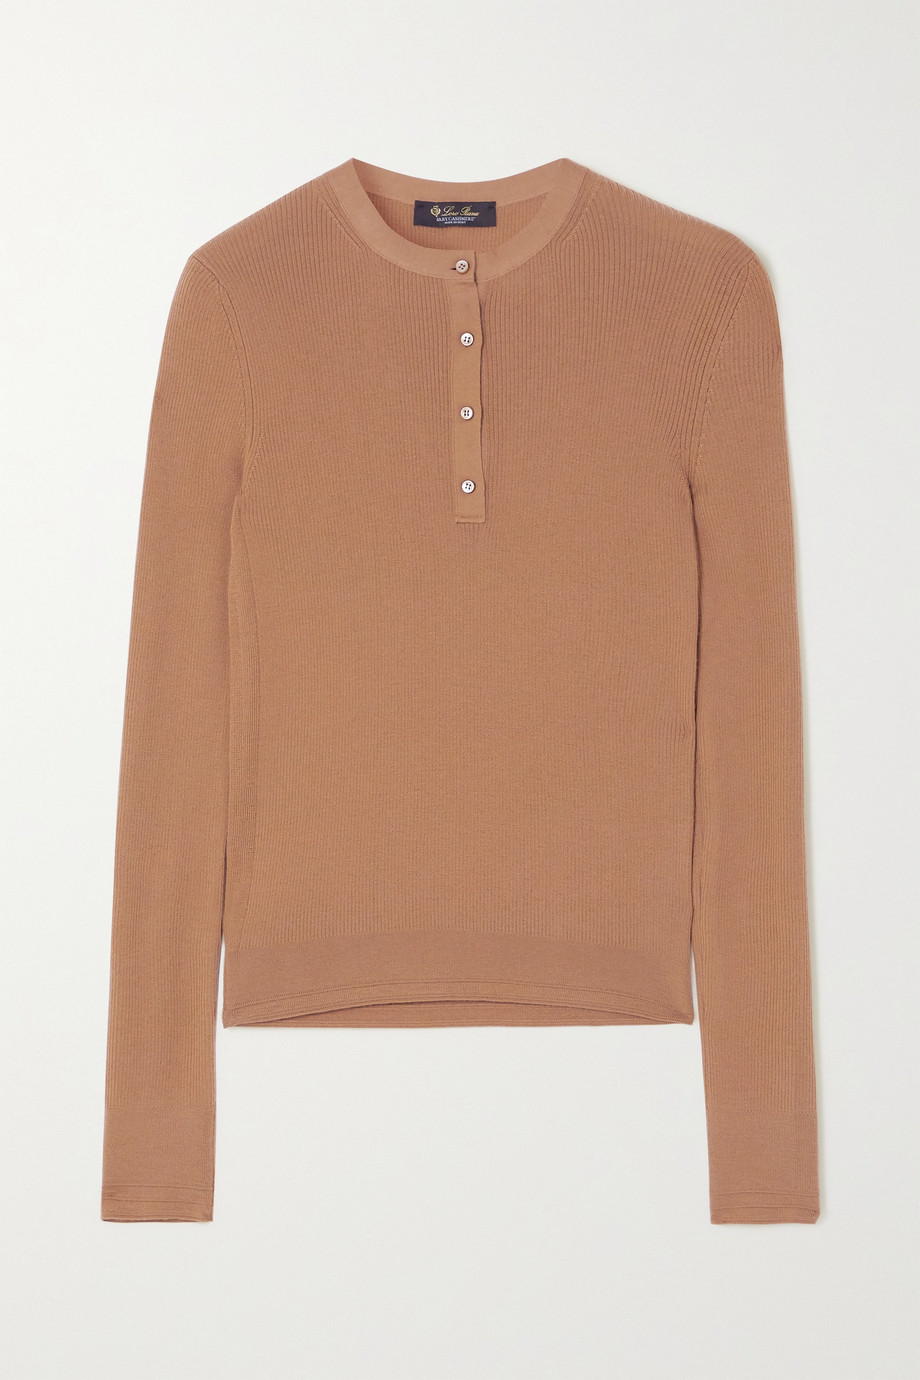 Loro Piana Ribbed cashmere top